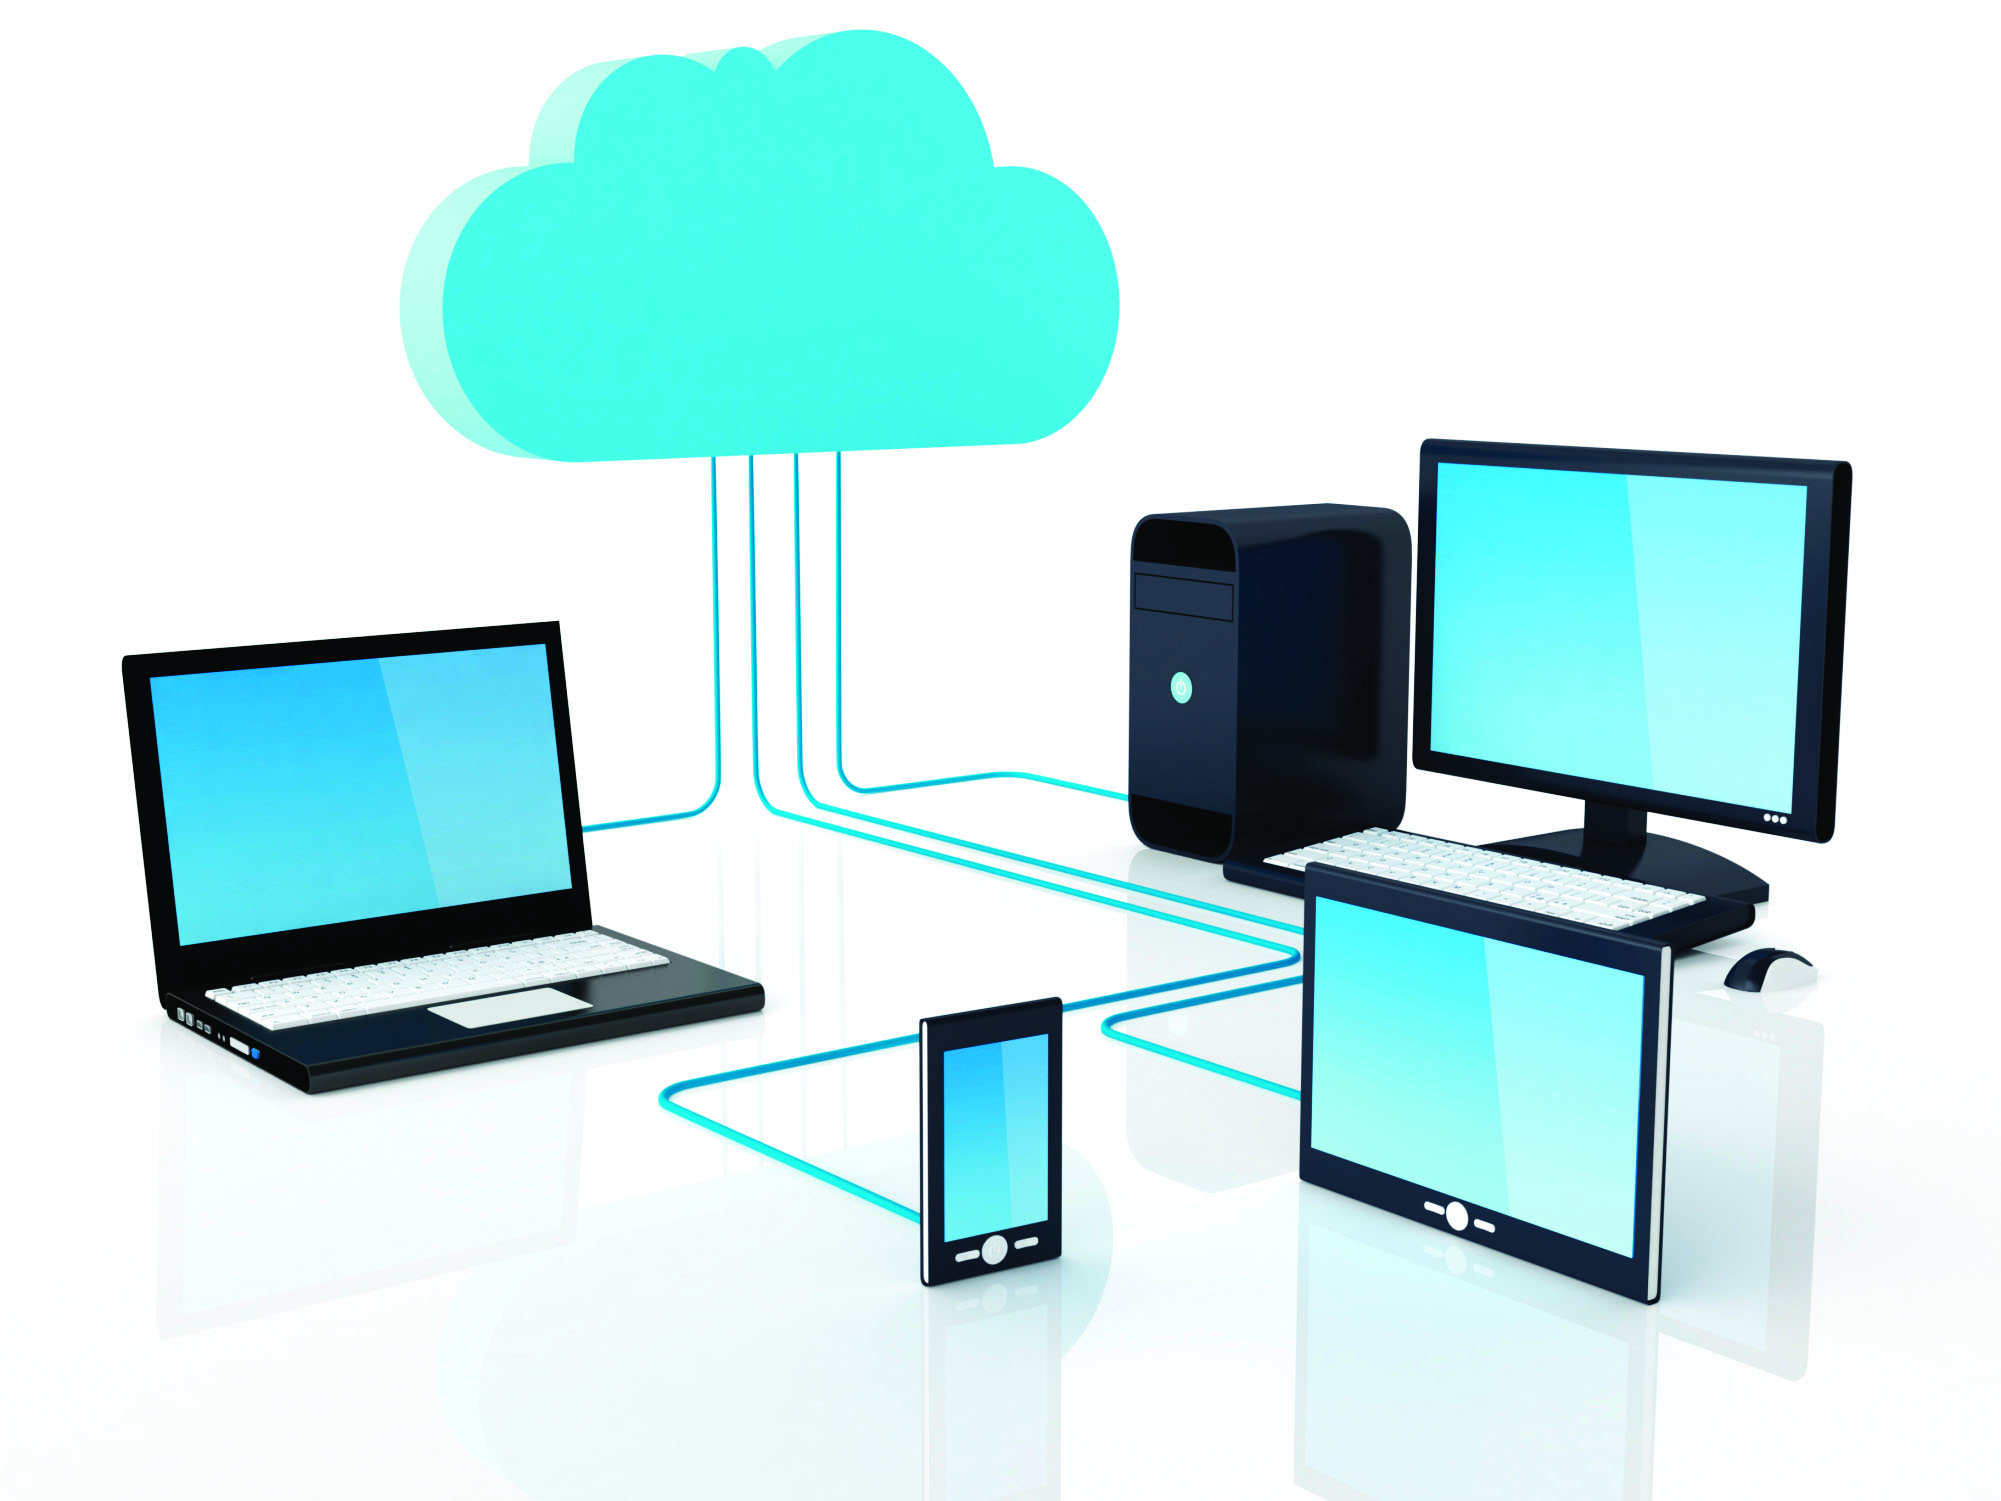 Backup to school with cloud-based data storage services